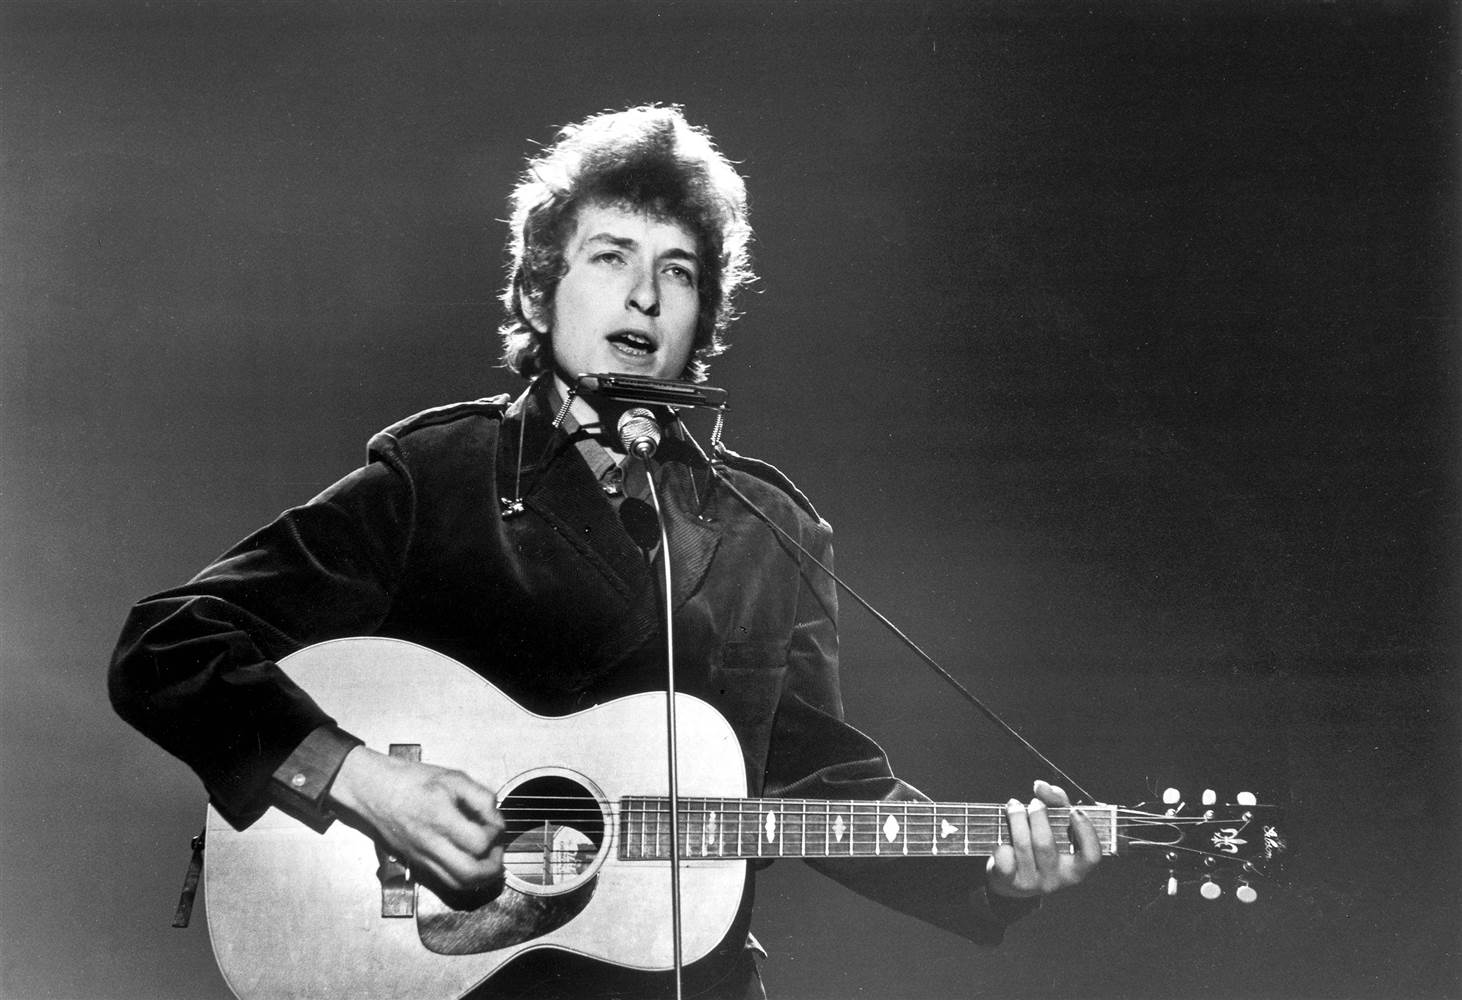 bob dylan lyricsbob dylan the times they are a changin, bob dylan hurricane, bob dylan слушать, bob dylan all along the watchtower, bob dylan скачать, bob dylan lyrics, bob dylan blowin in the wind chords, bob dylan forever young, bob dylan chords, bob dylan nobel prize, bob dylan wiki, bob dylan аккорды, bob dylan перевод, bob dylan don't think twice, bob dylan highway 61 revisited, bob dylan knockin' on heaven's door lyrics, bob dylan blood on the tracks, bob dylan house of the rising sun, bob dylan дискография, bob dylan wild world